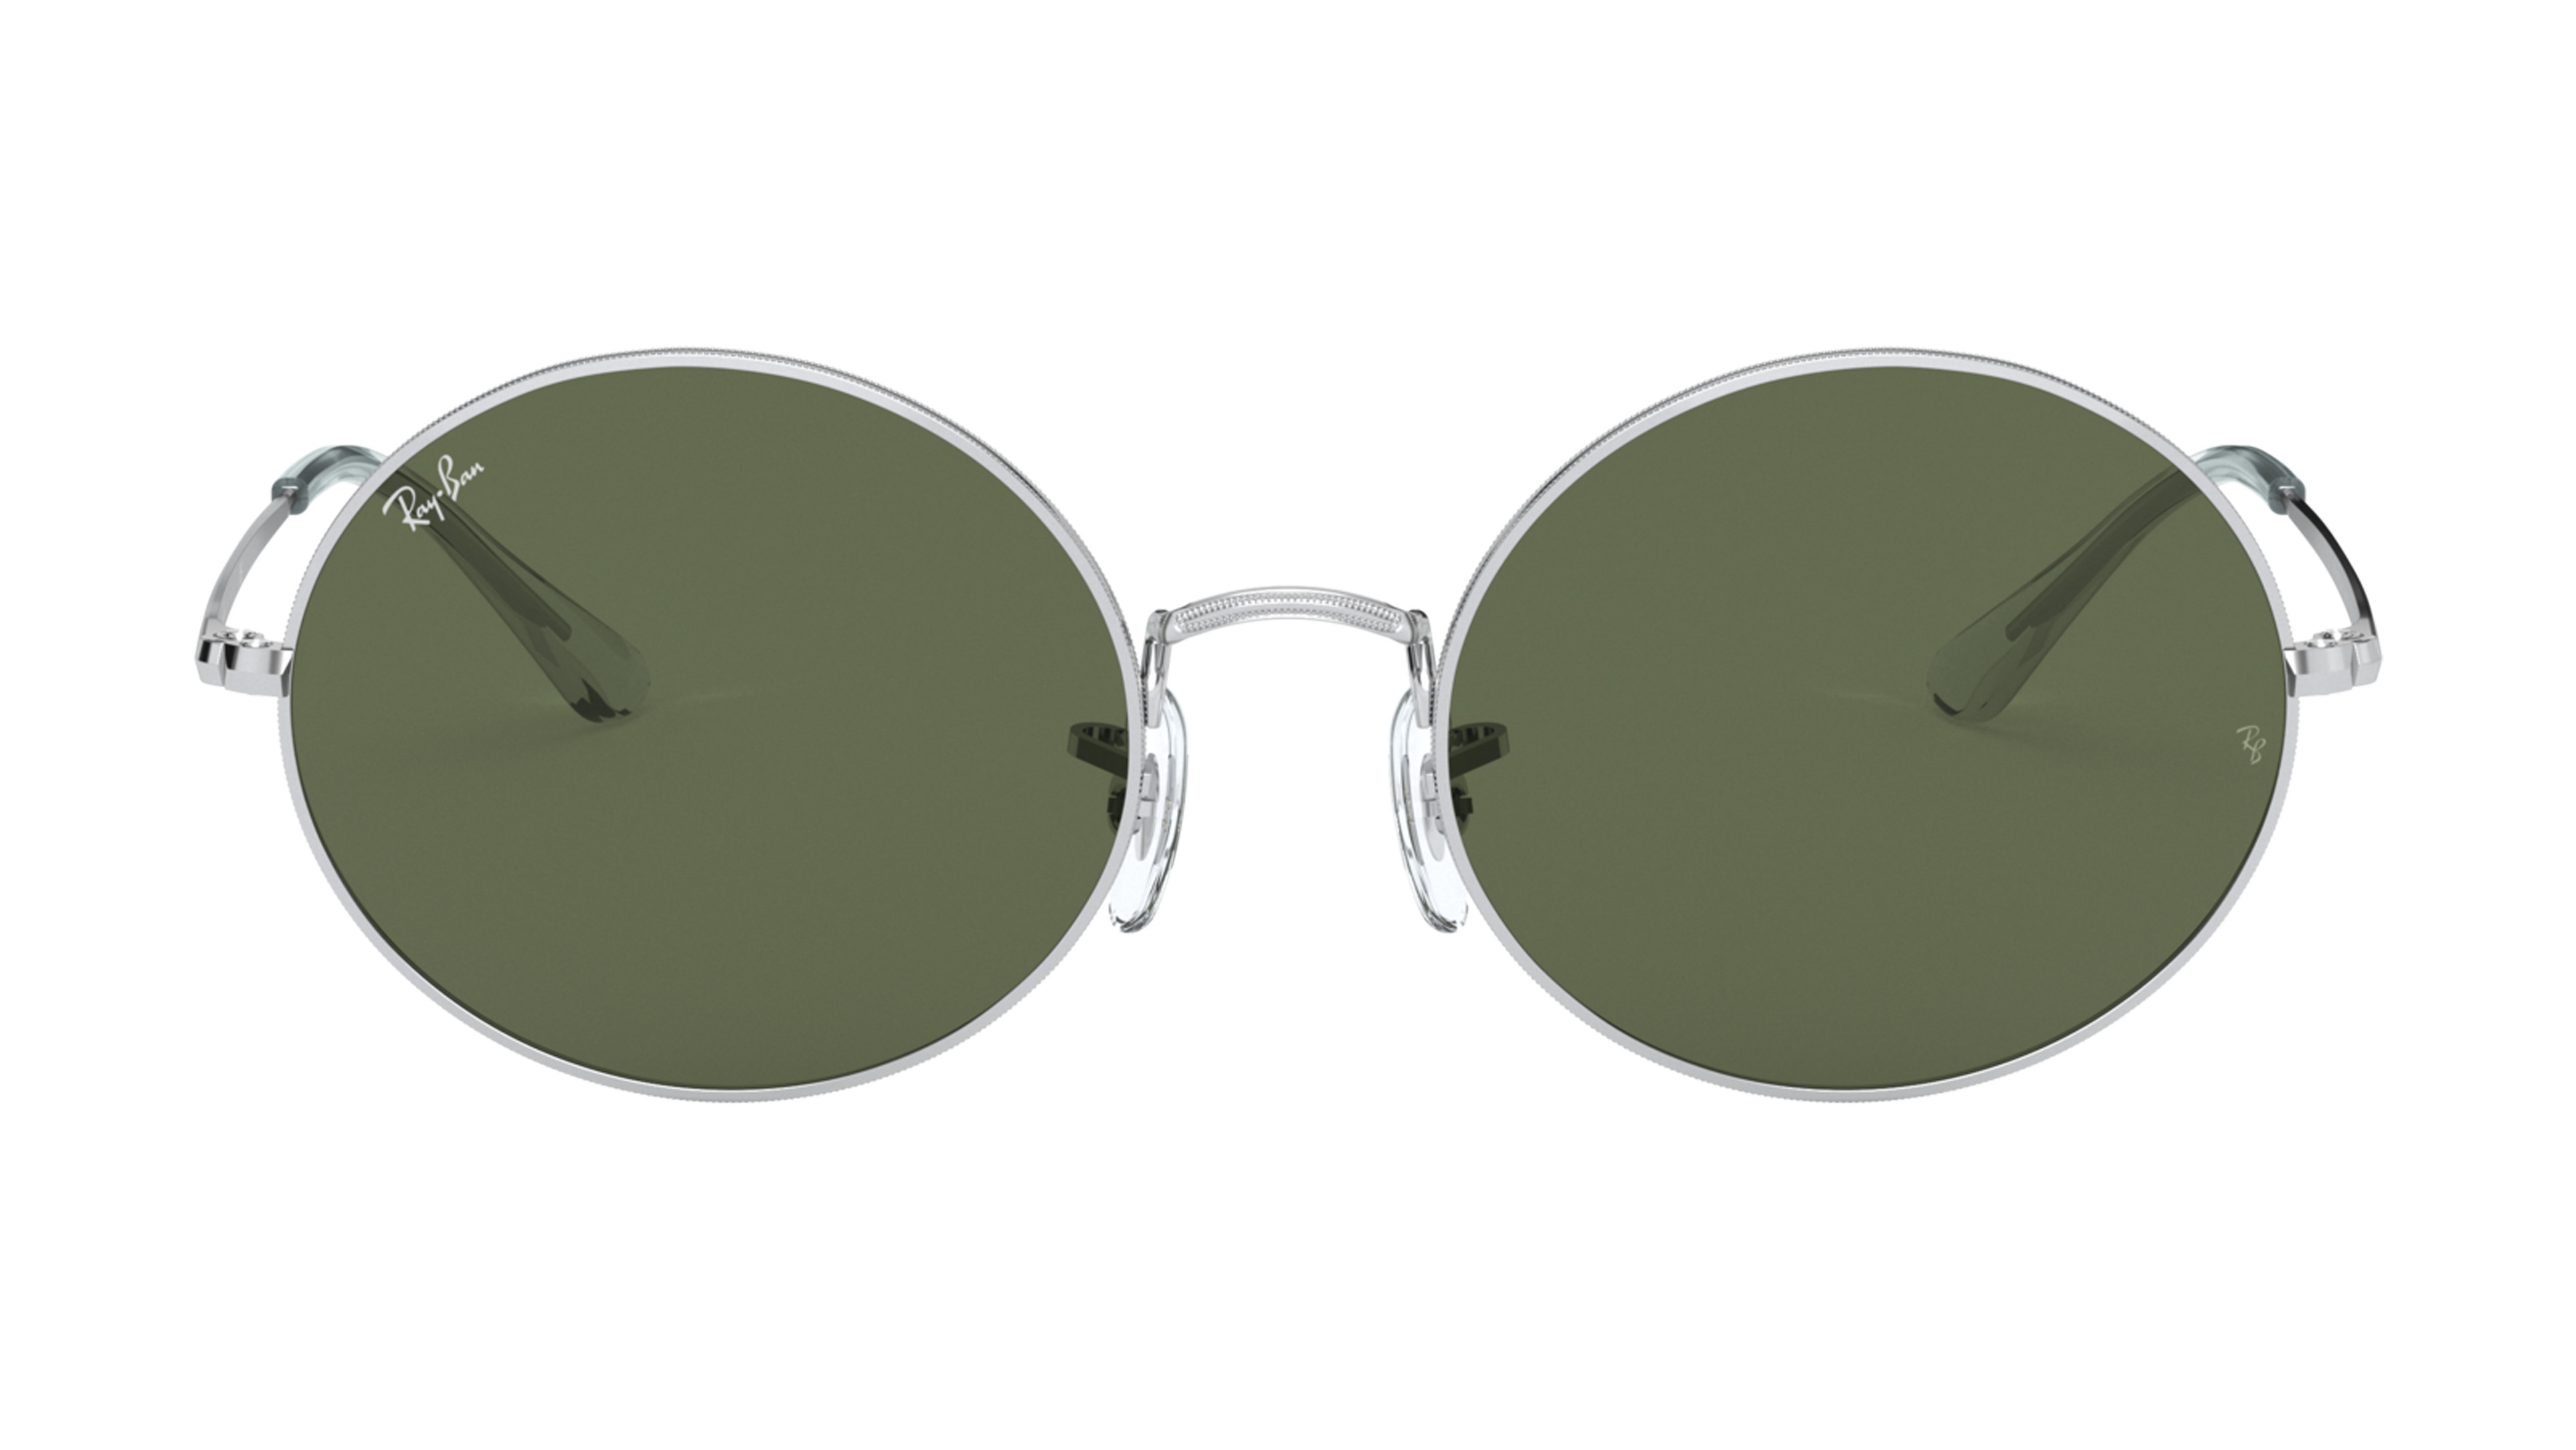 8056597177429-front-ray-ban-oval-sonnenbrille-0RB1970-914931